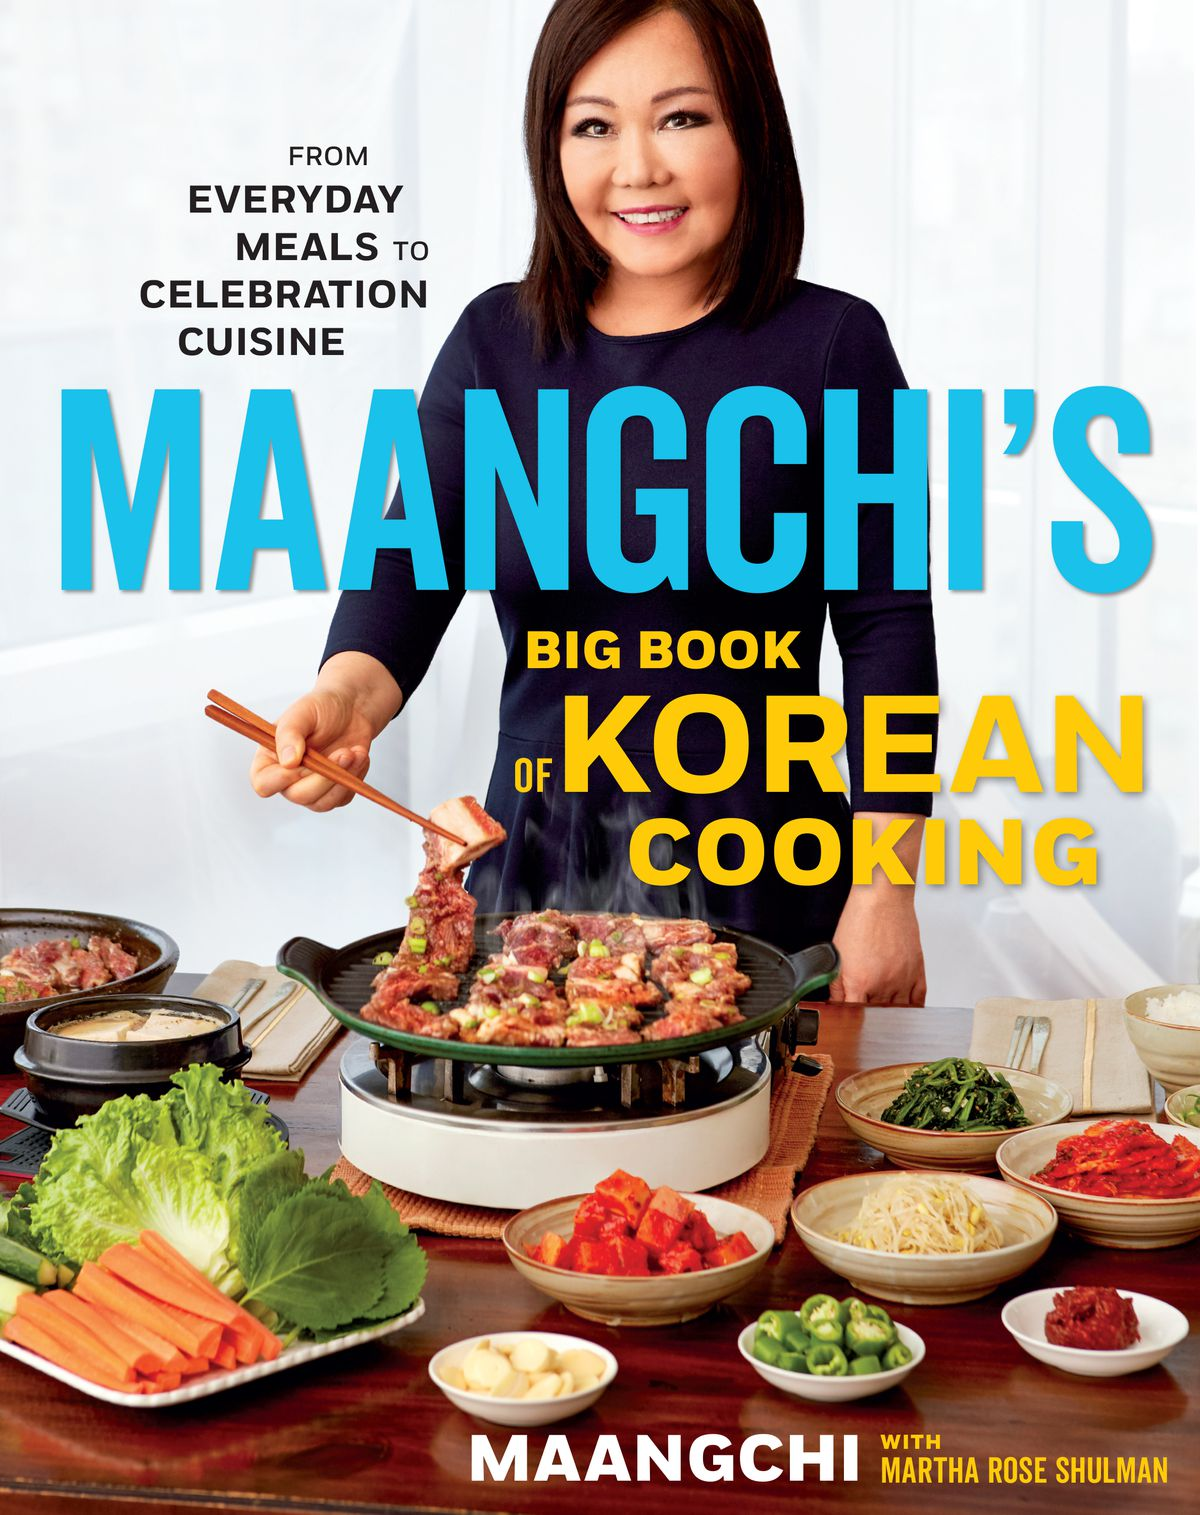 """Cover of """"Maangchi's Big Book of Korean Cooking: From Everyday Meals to Celebration Cuisine"""" cookbook, with Maangchi standing over a steaming pot and smiling at the camera"""